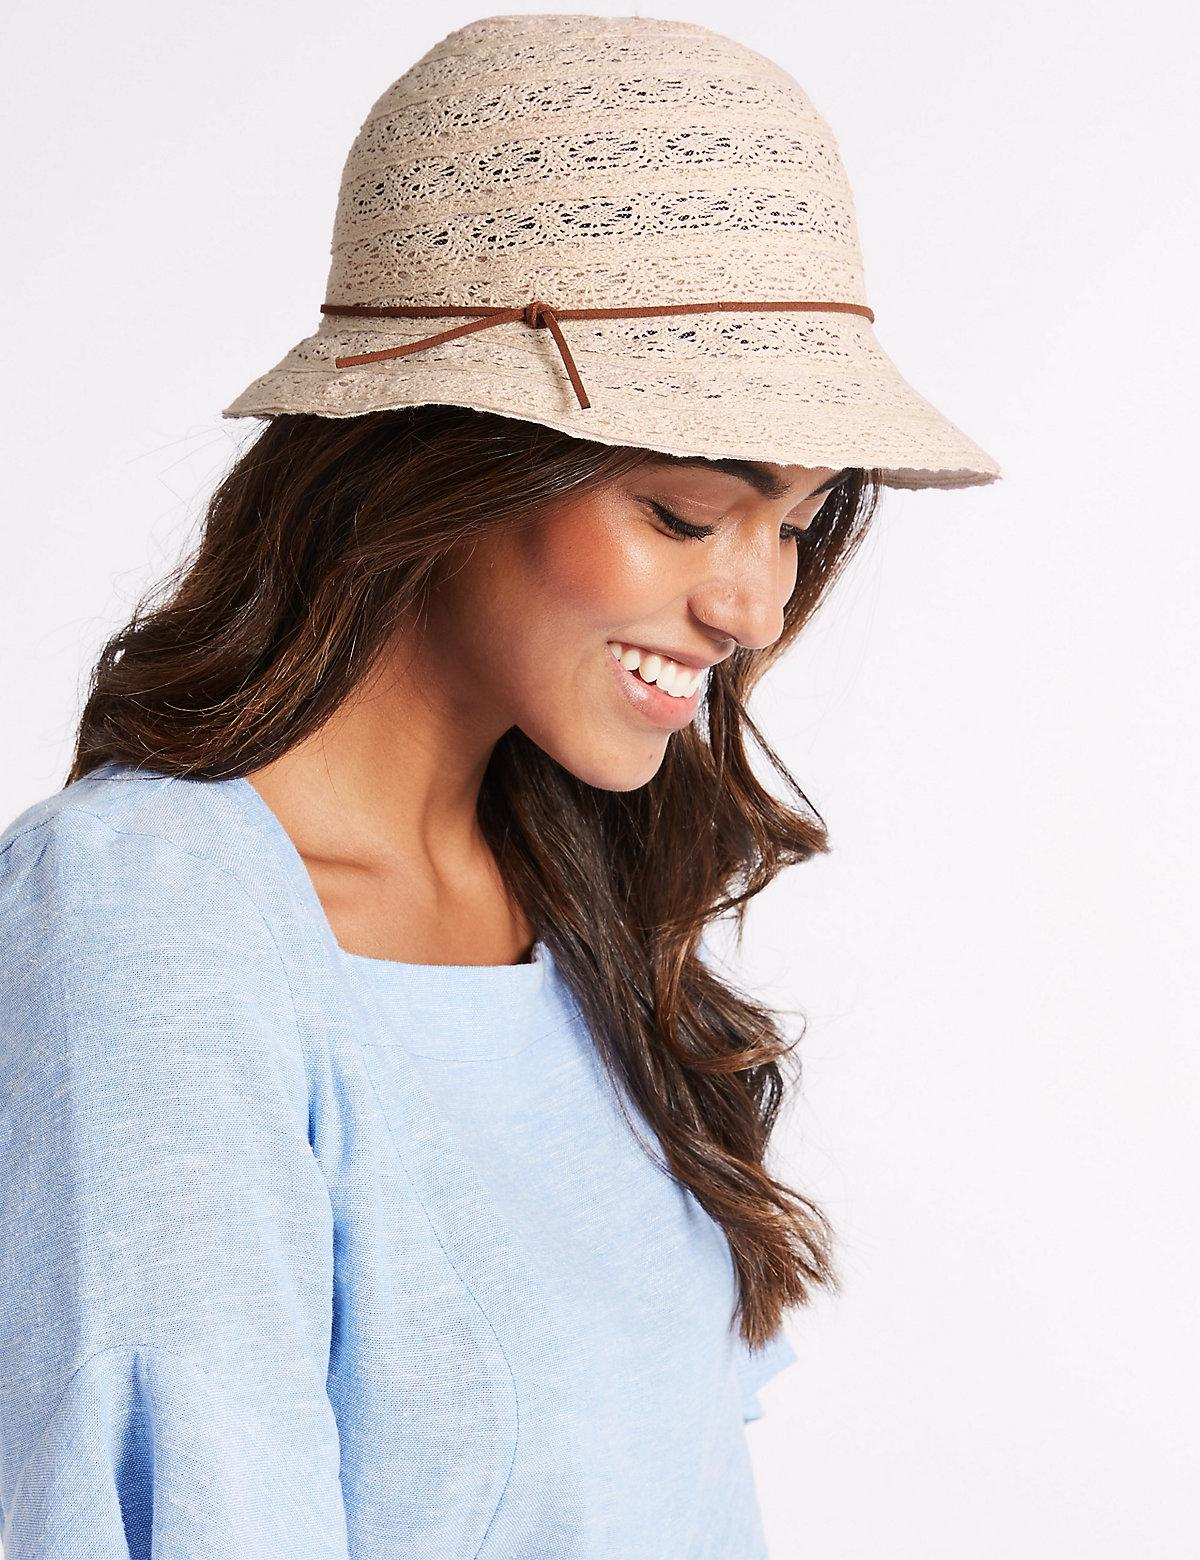 49c5d77a Marks & Spencer Cotton Blend Cloche Sun Hat in Natural - Lyst